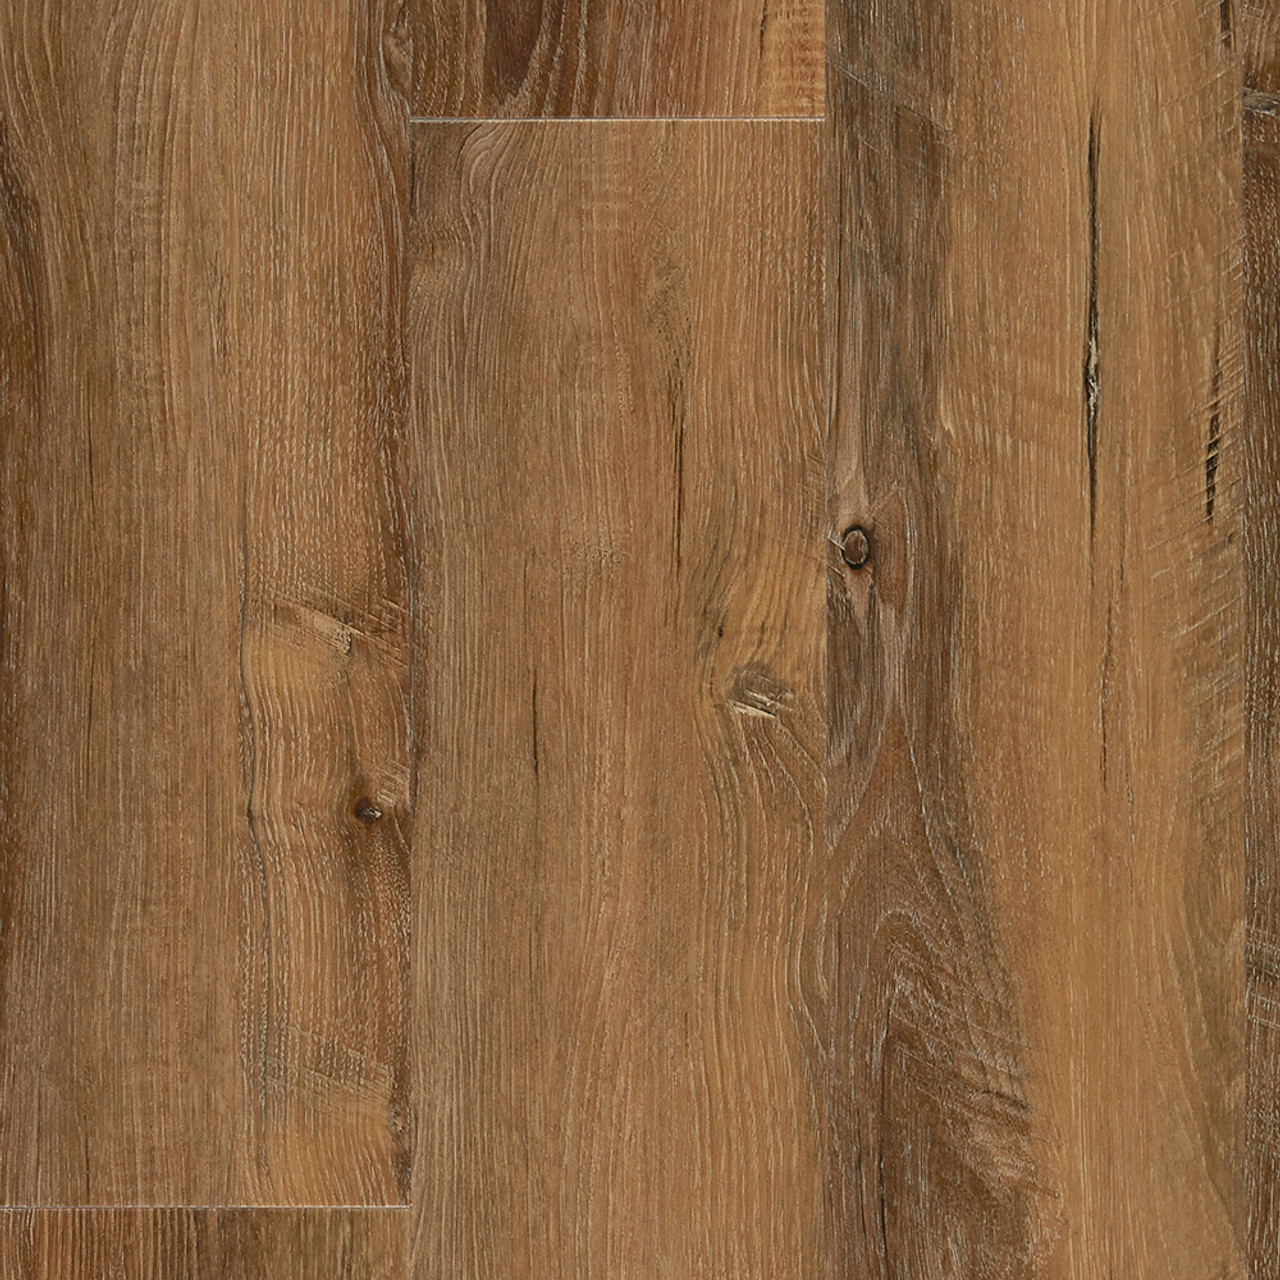 Mannington Adura Max Napa Tannin 8 Mm Thick X 6 In Wide X 48 In Length Luxury Vinyl Plank Flooring Go For Floors